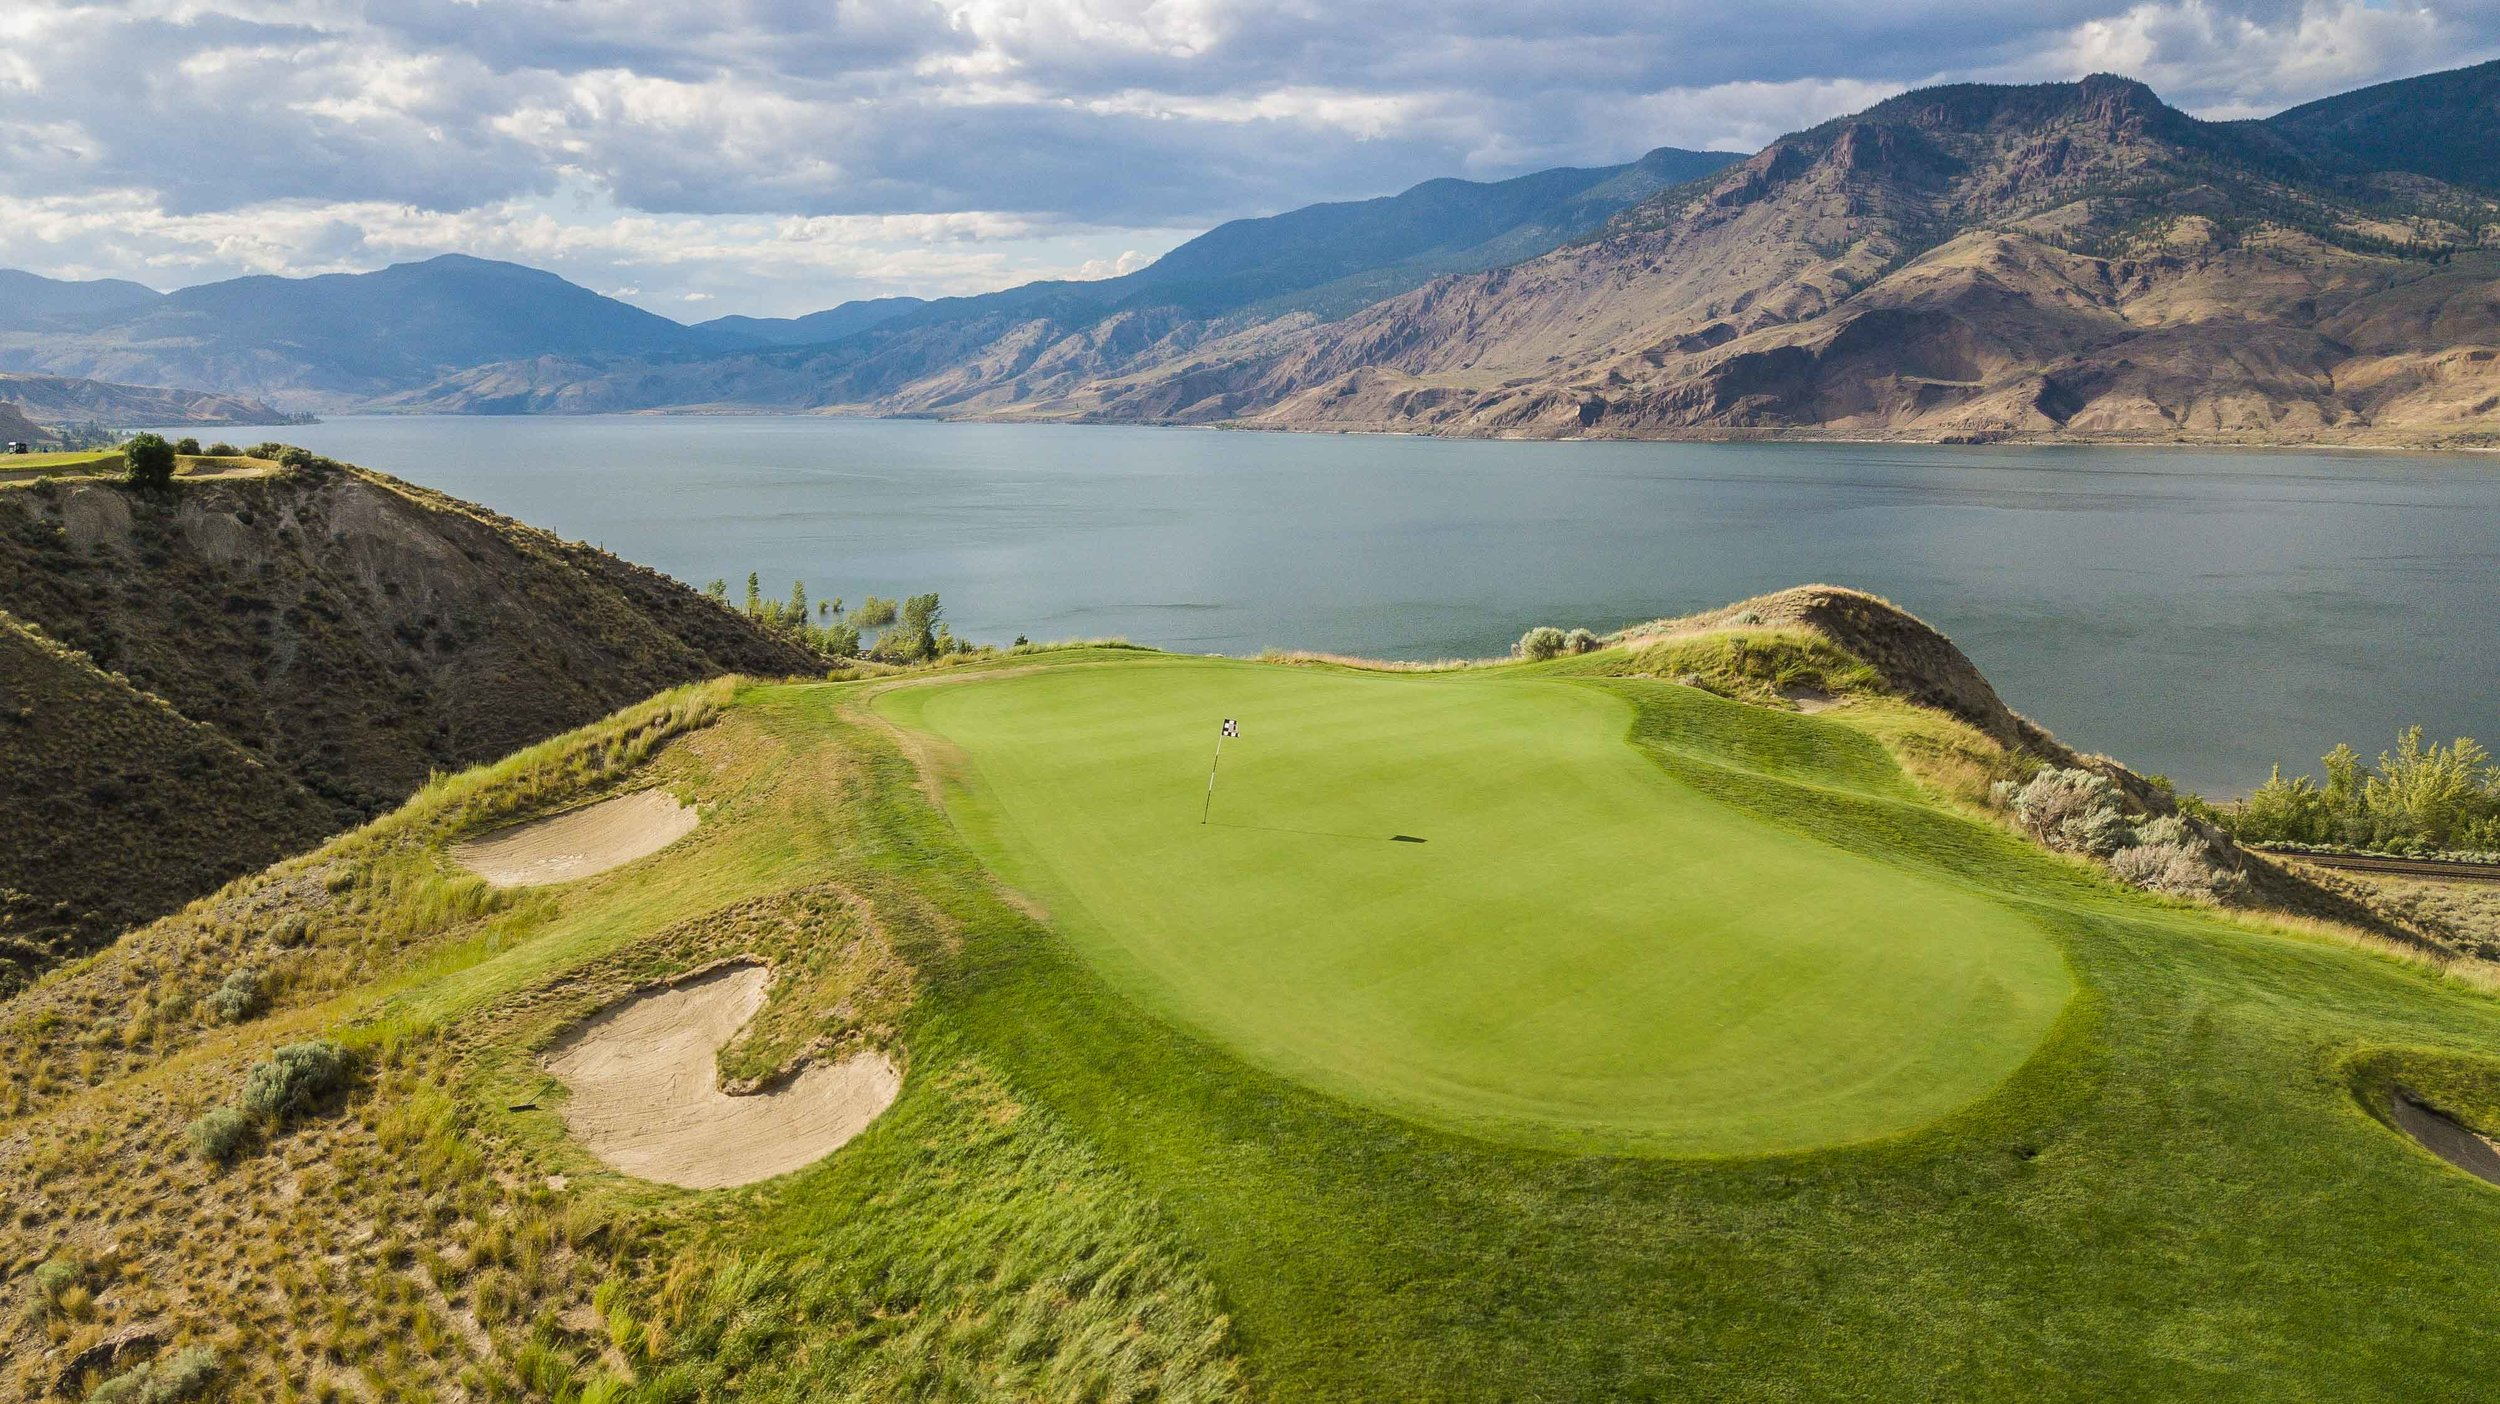 The 7th hole at Tobiano is a signature par 3.